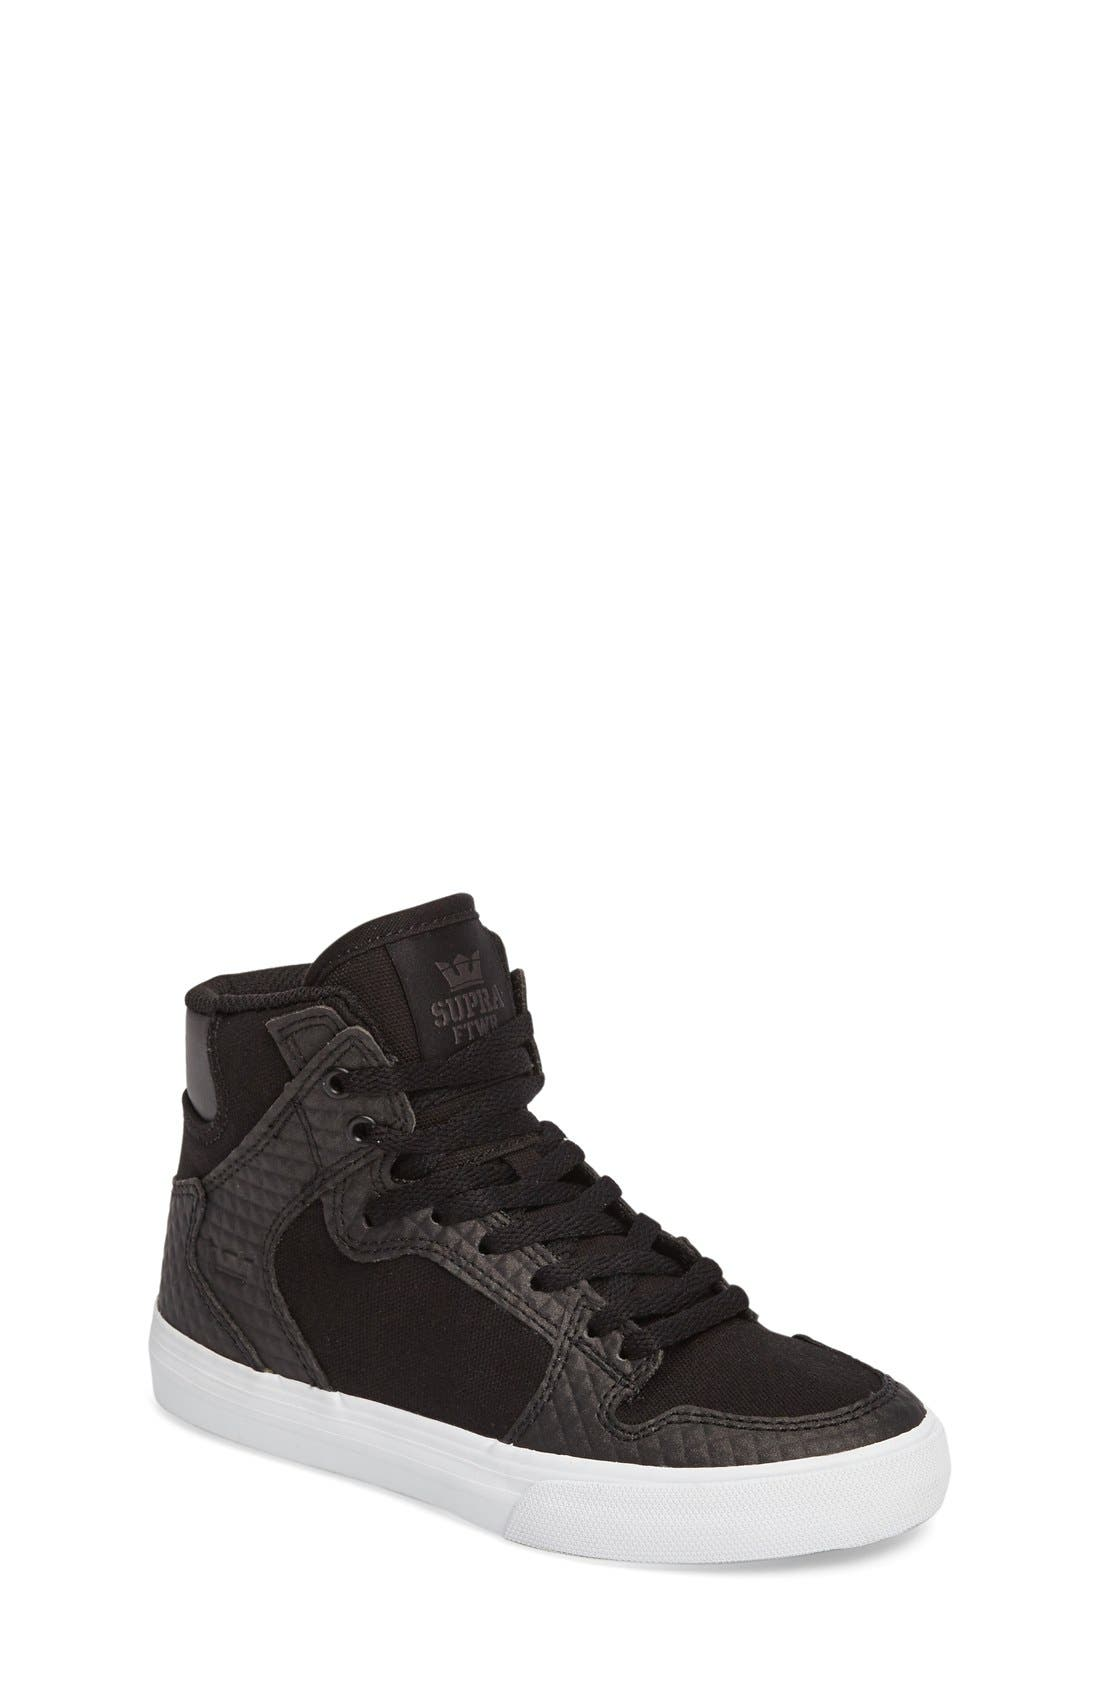 Supra 'Vaider' High Top Sneaker (Walker, Toddler, Little Kid & Big Kid)